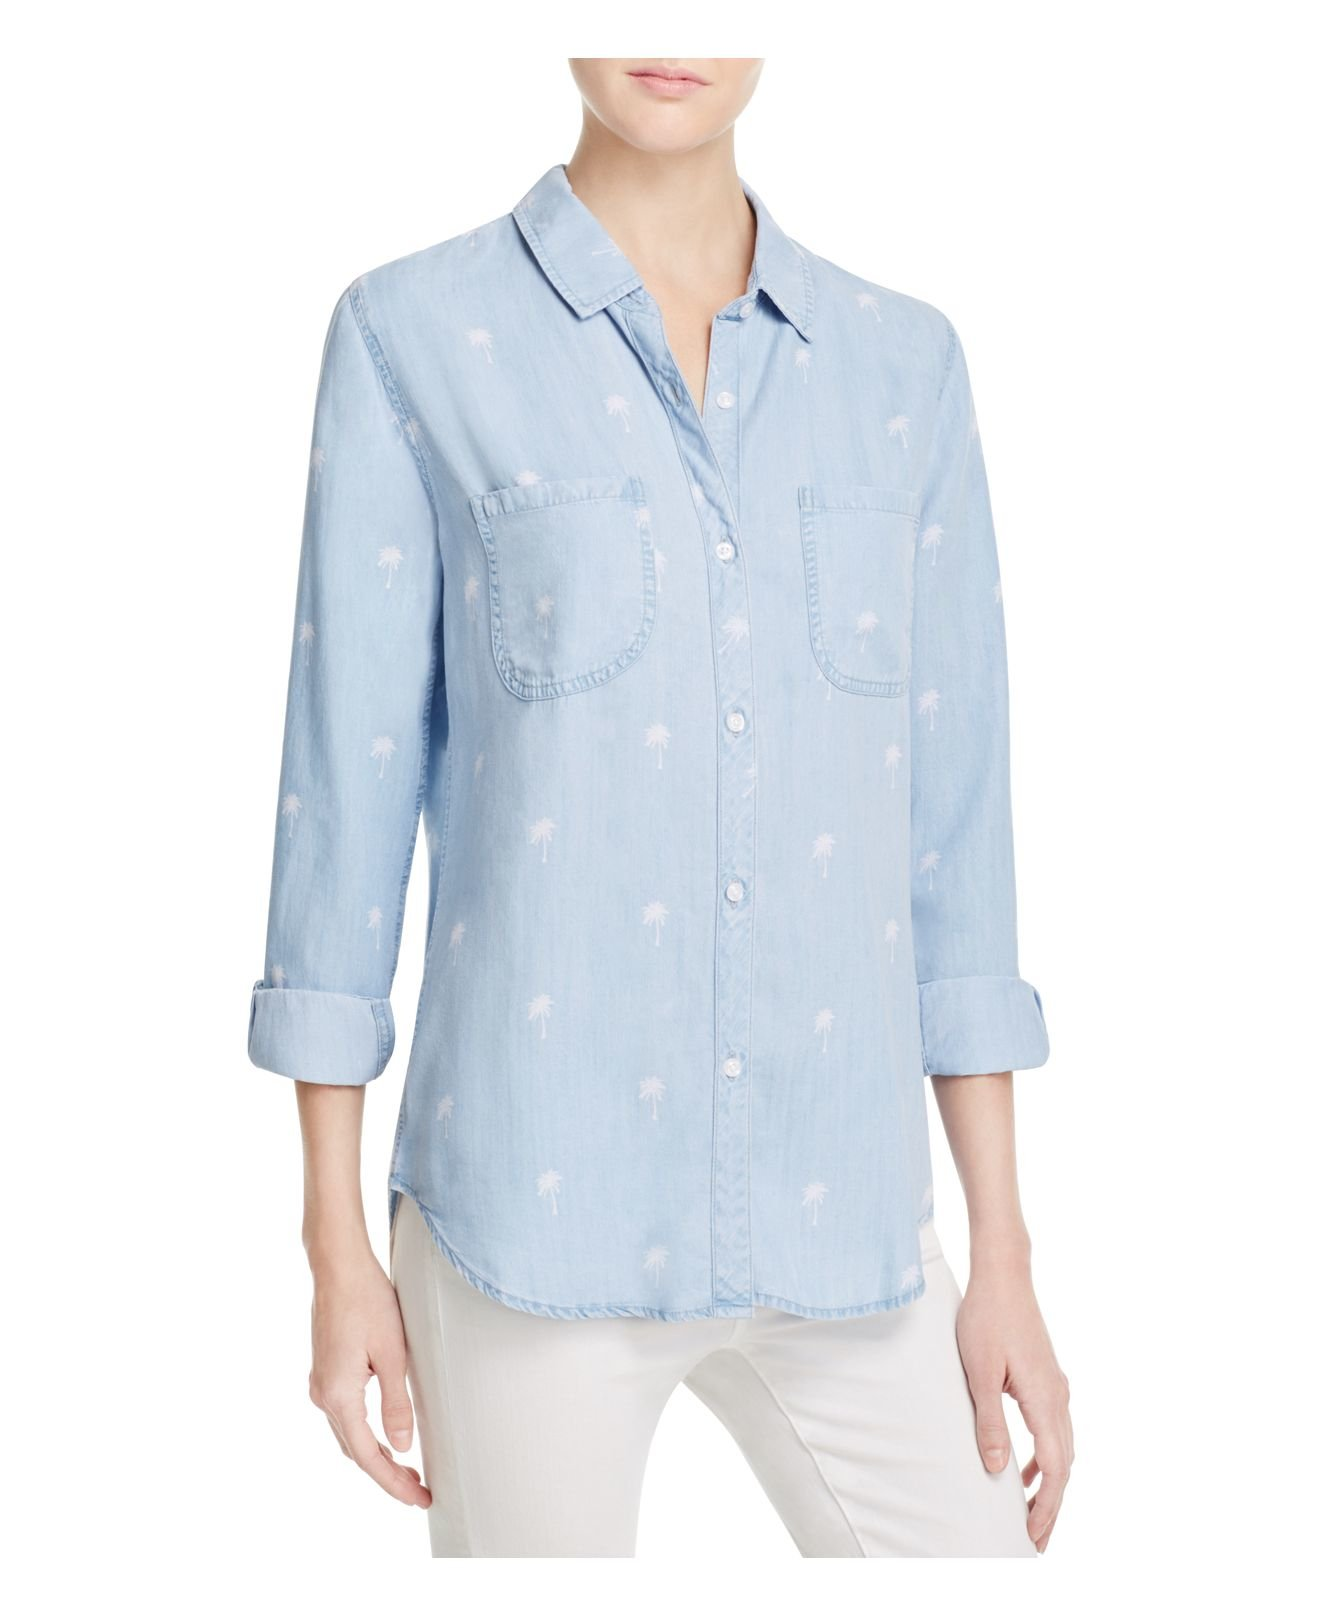 Lyst rails carter chambray shirt in blue for Chambray 7 s